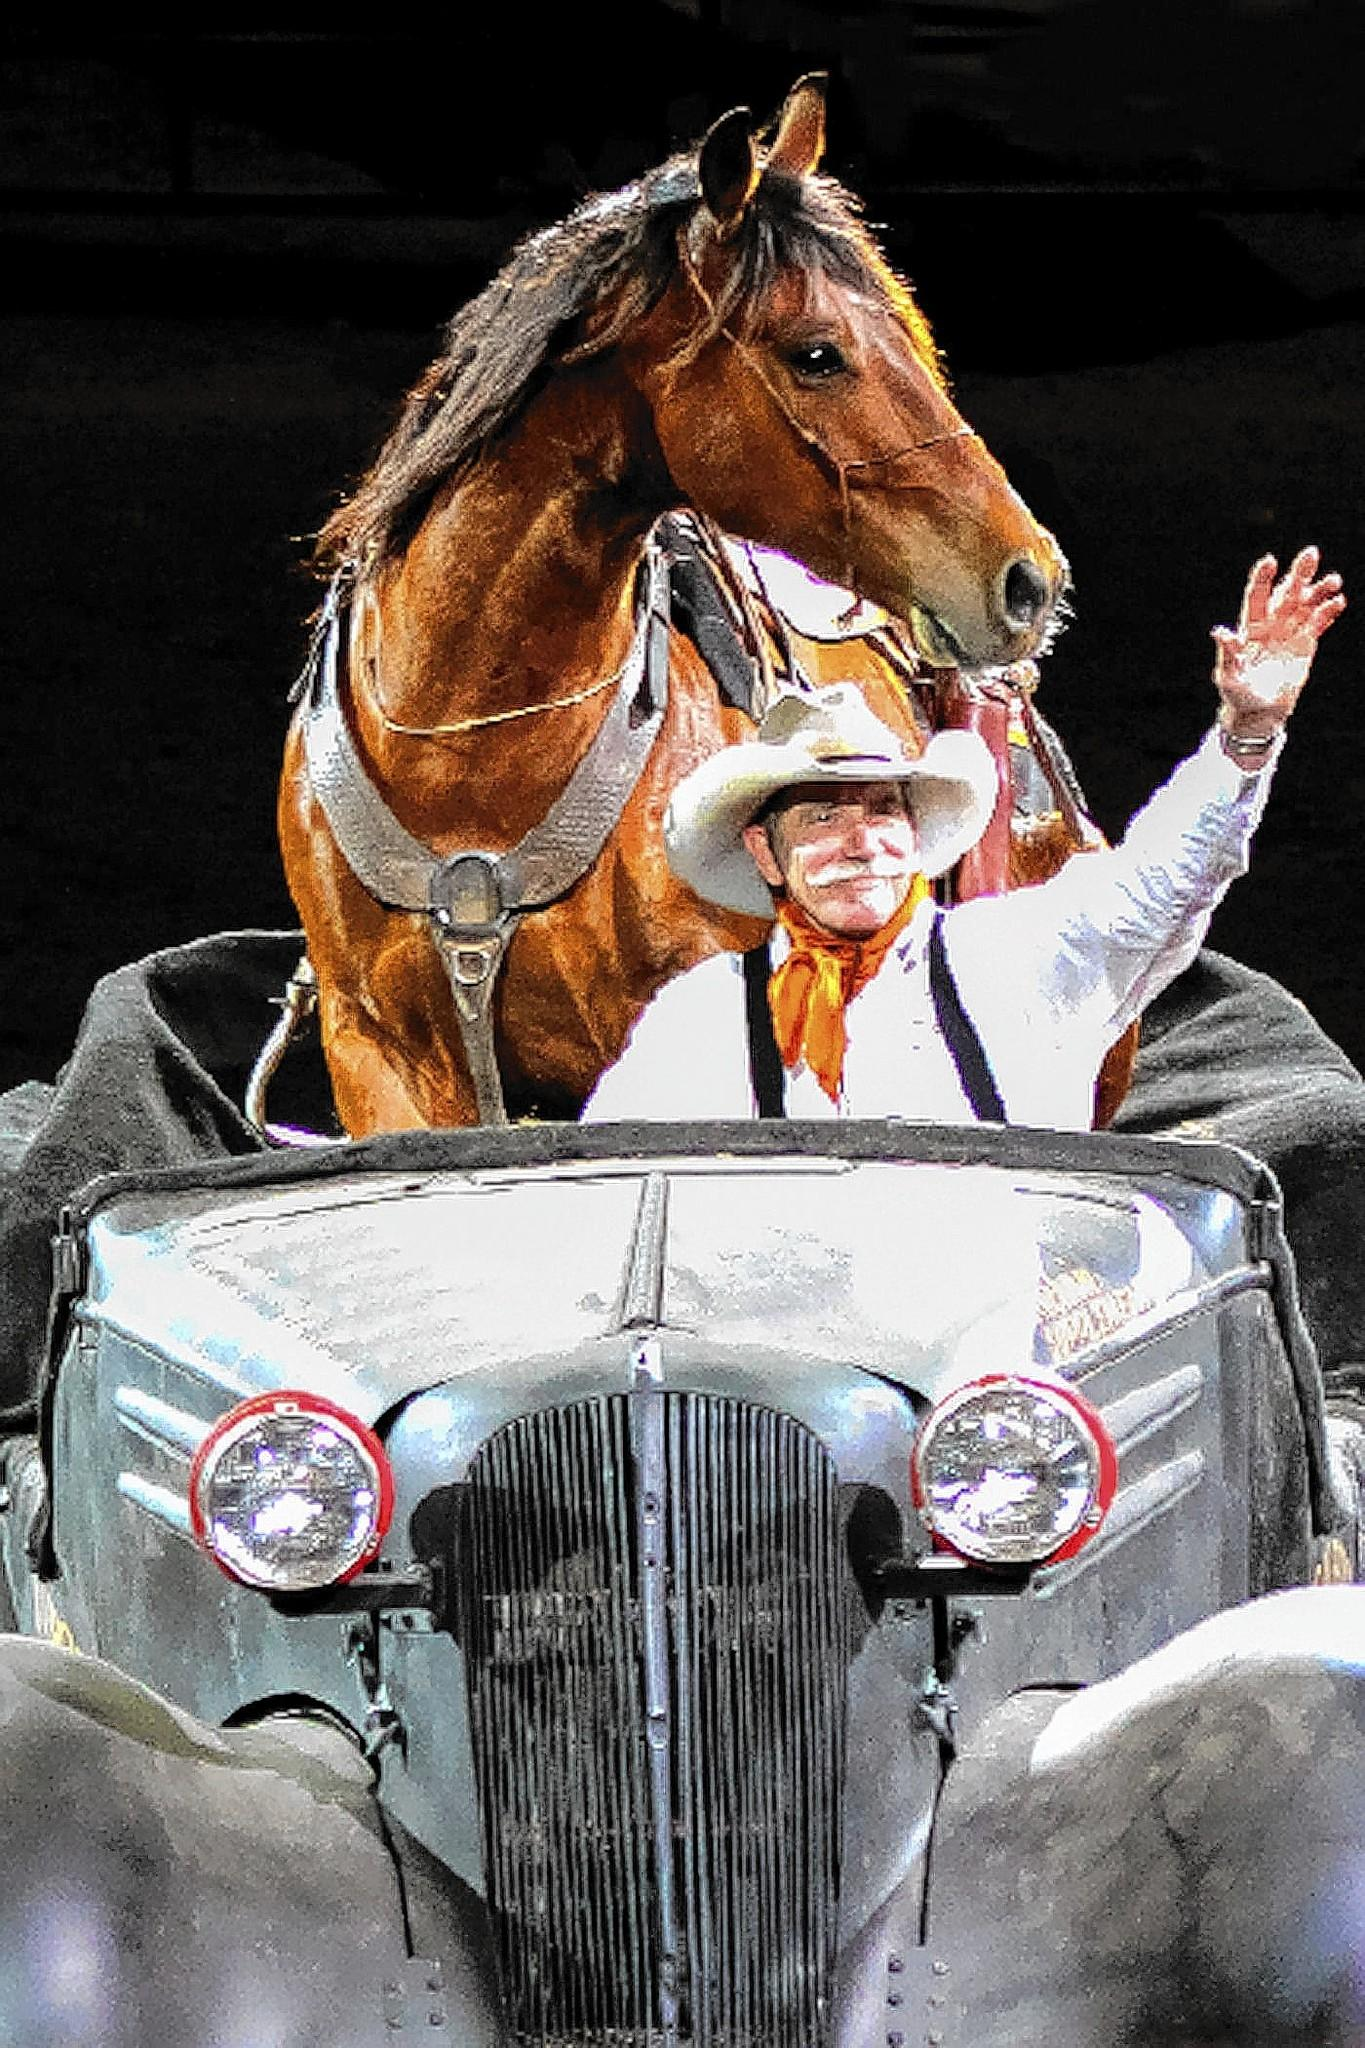 Bobby Kerr, who placed second and third in the Mustang Millionaire showcased on Nat Geo Wild in December, performs with his formerly wild mustangs in Theatre Equus at the Pennsylvania Horse Show.